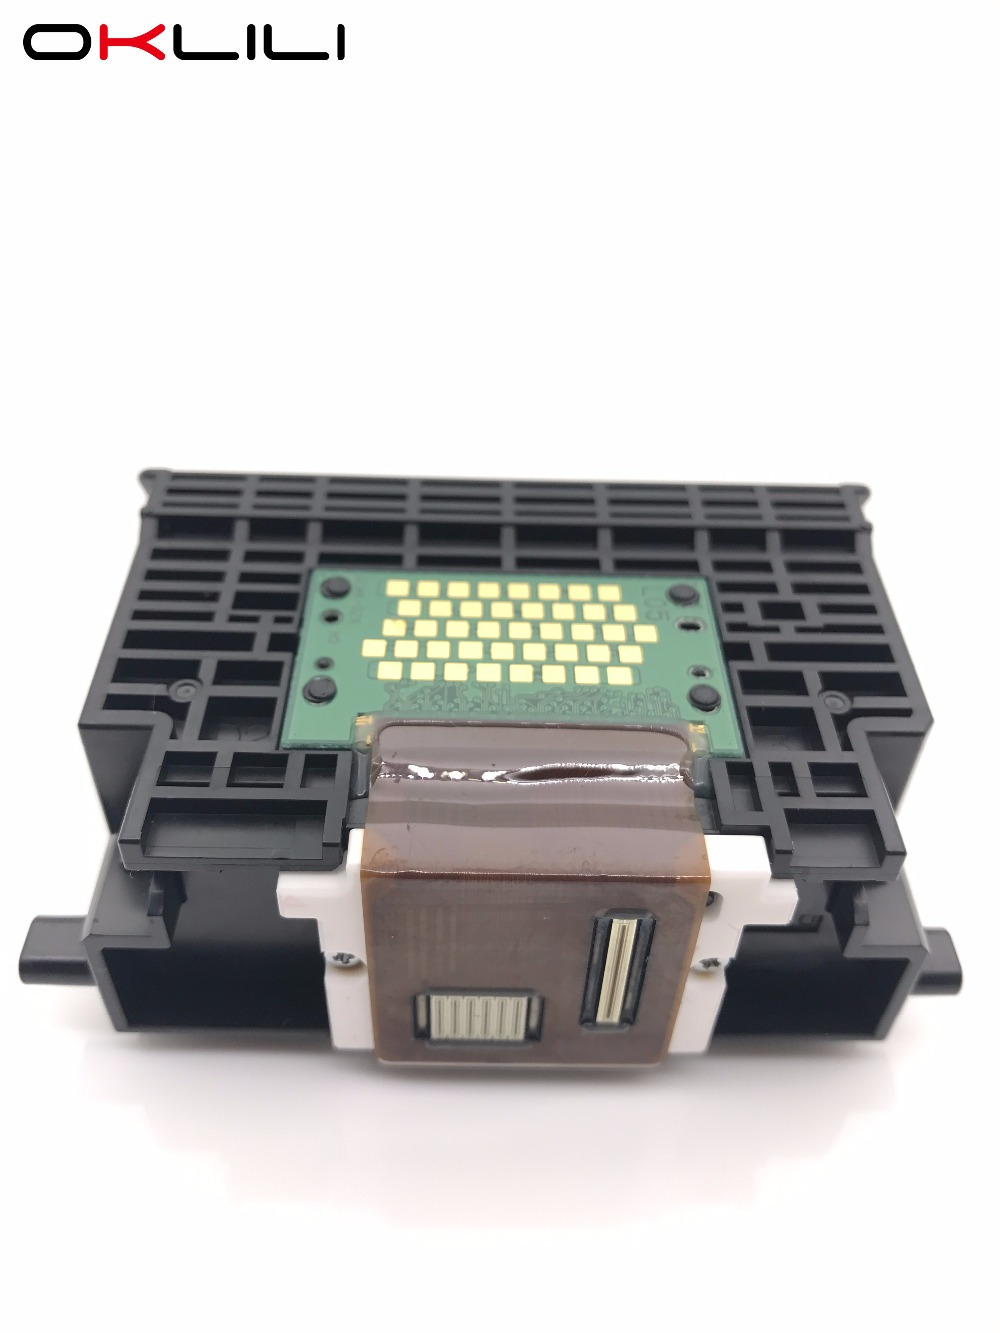 OKLILI ORIGINAL QY6-0059 QY6-0059-000 Printhead Print Head Printer Head for Canon iP4200 MP500 MP530 oklili original qy6 0045 qy6 0045 000 printhead print head printer head for canon i550 pixus 550i